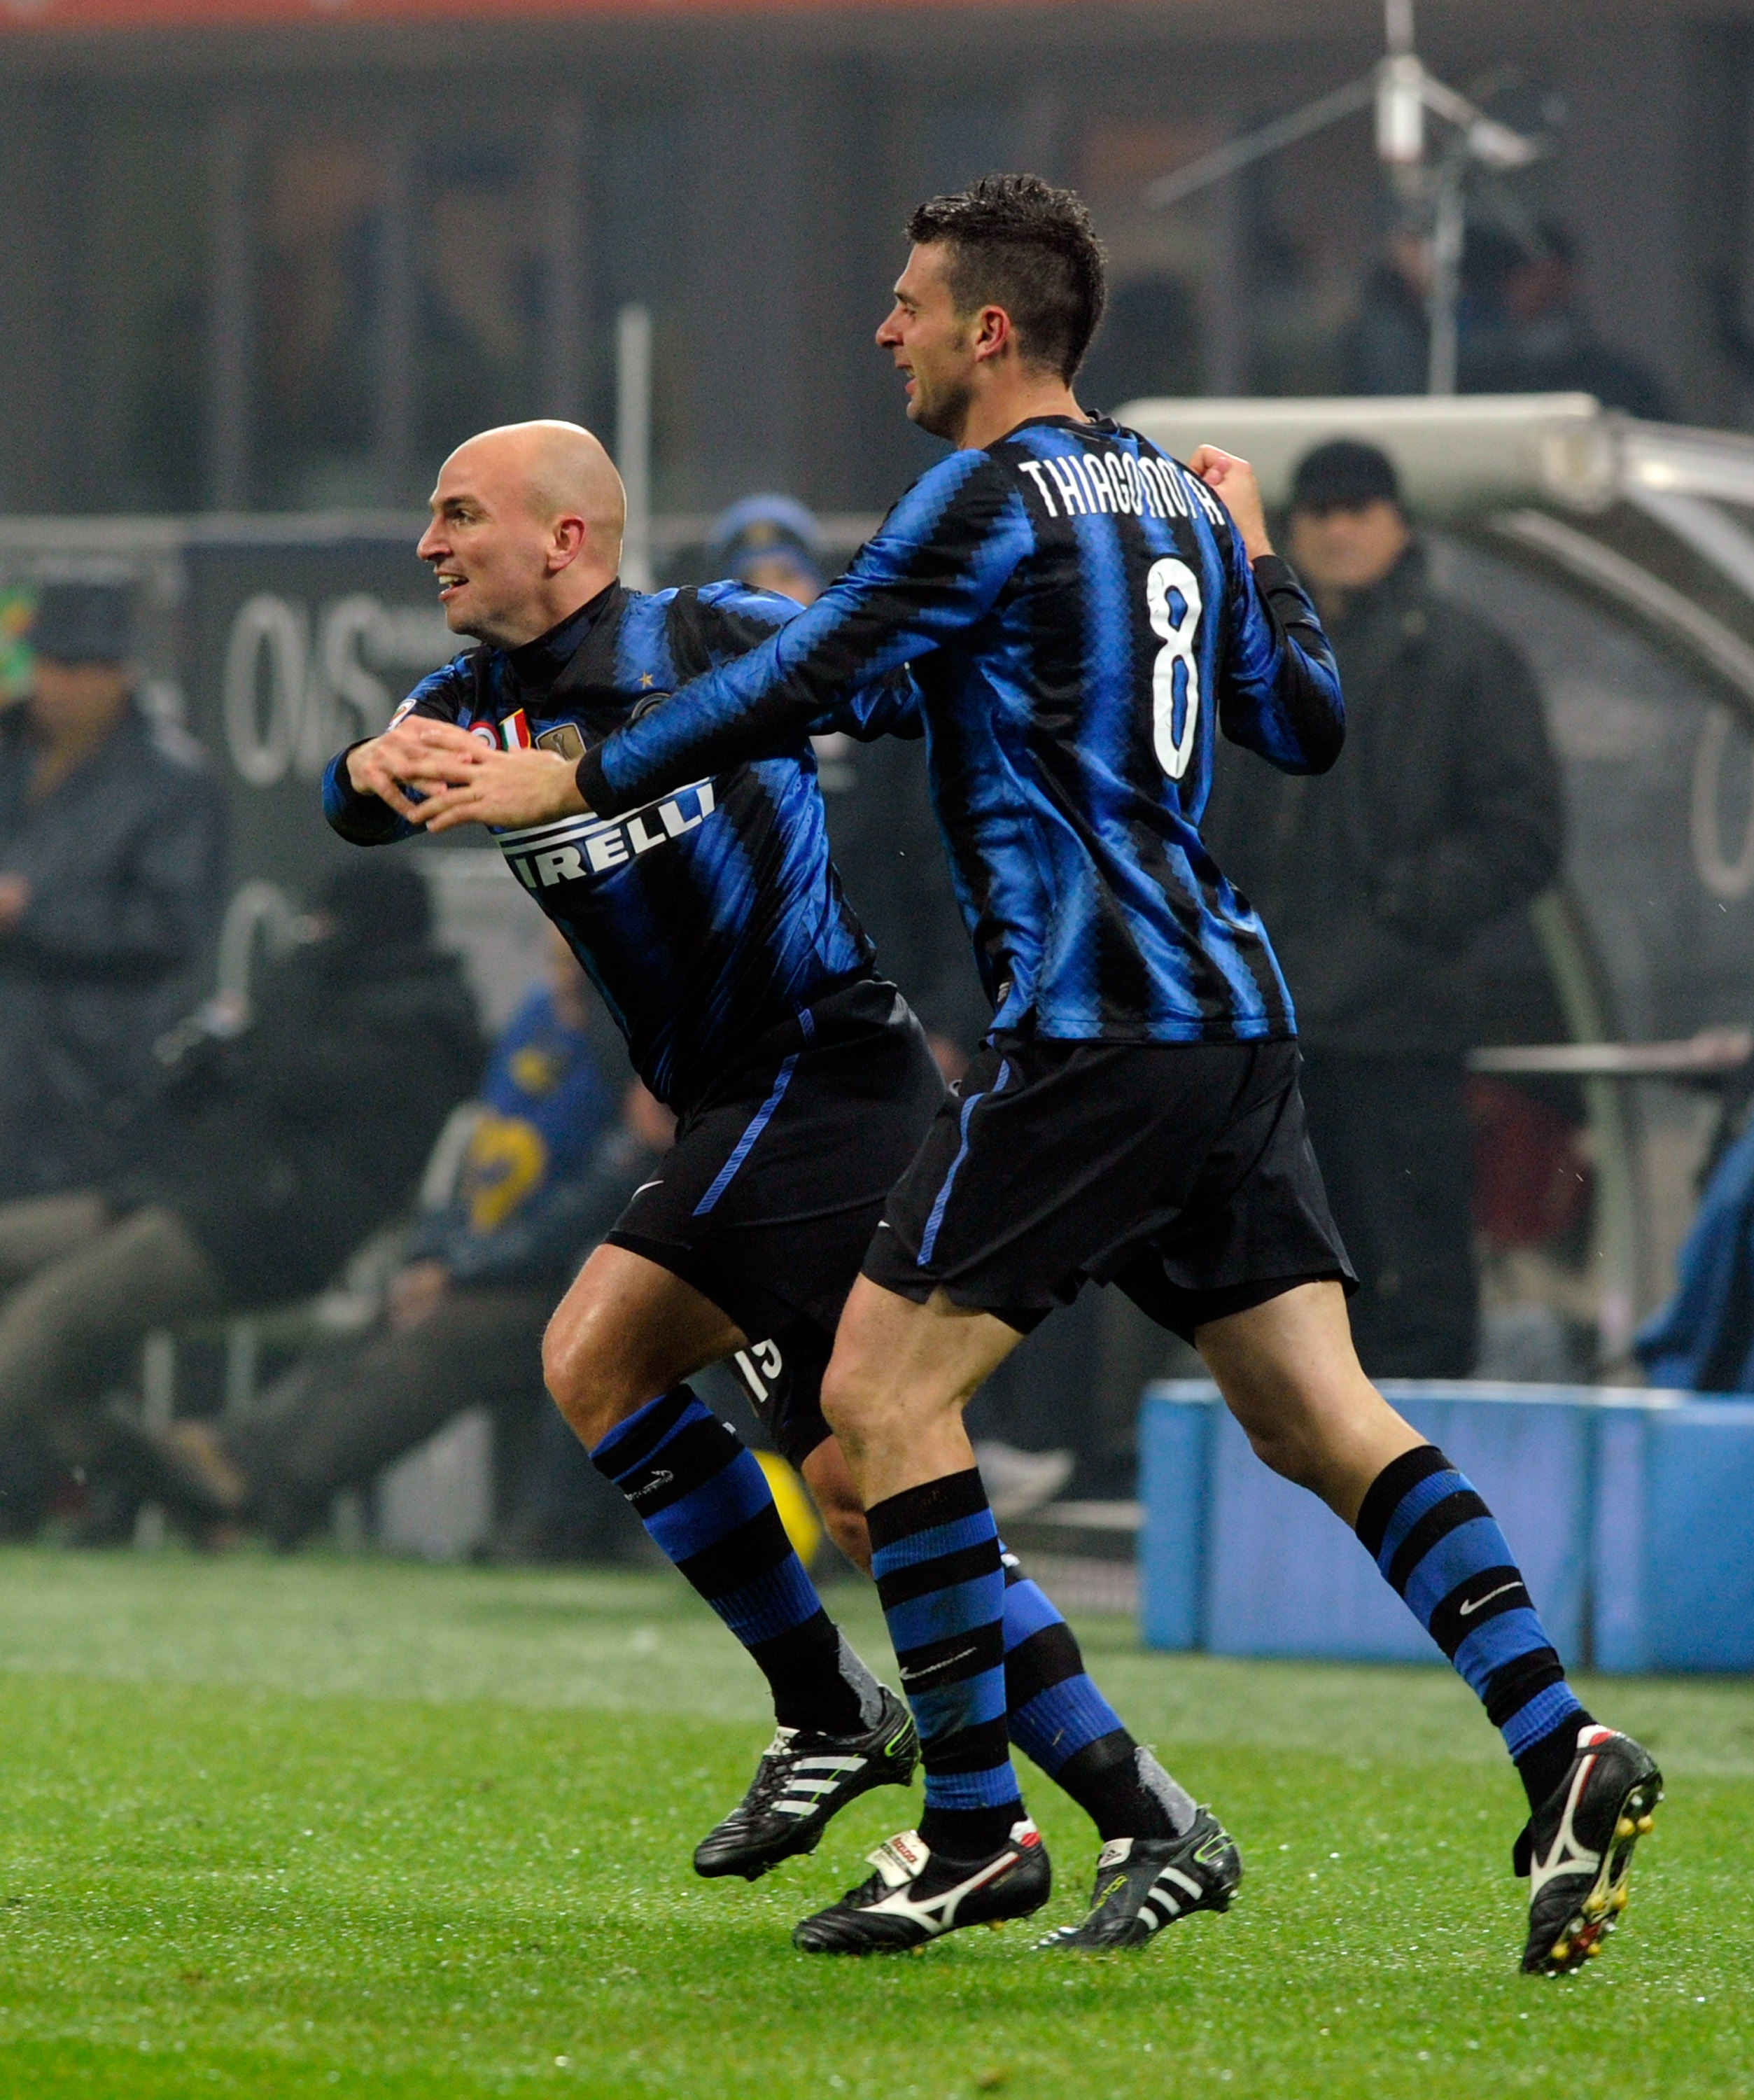 MILAN, ITALY - JANUARY 06:  Esteban Cambiasso (L) and Thiago Motta of FC Internazionale Milano celebrate scoring the third goal during the Serie A match between Inter and Napoli at Stadio Giuseppe Meazza on January 6, 2011 in Milan, Italy.  (Photo by Clau